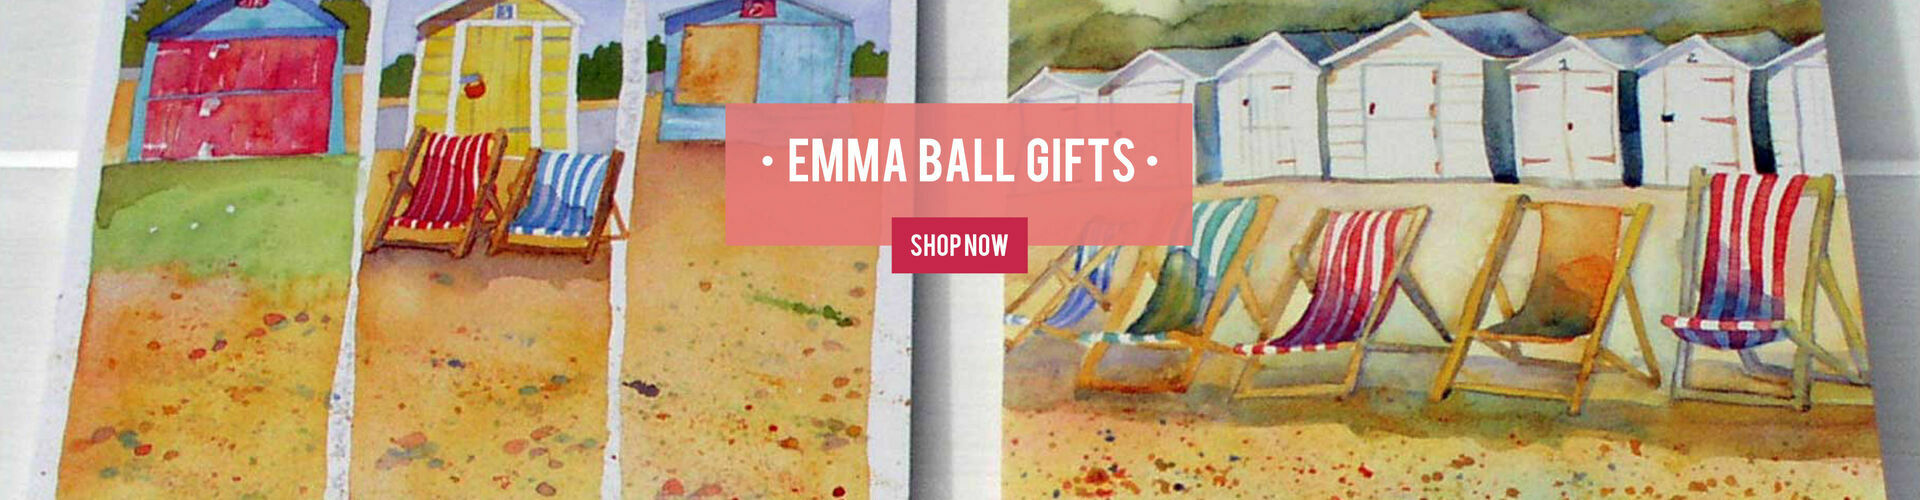 Emma Ball Gifts